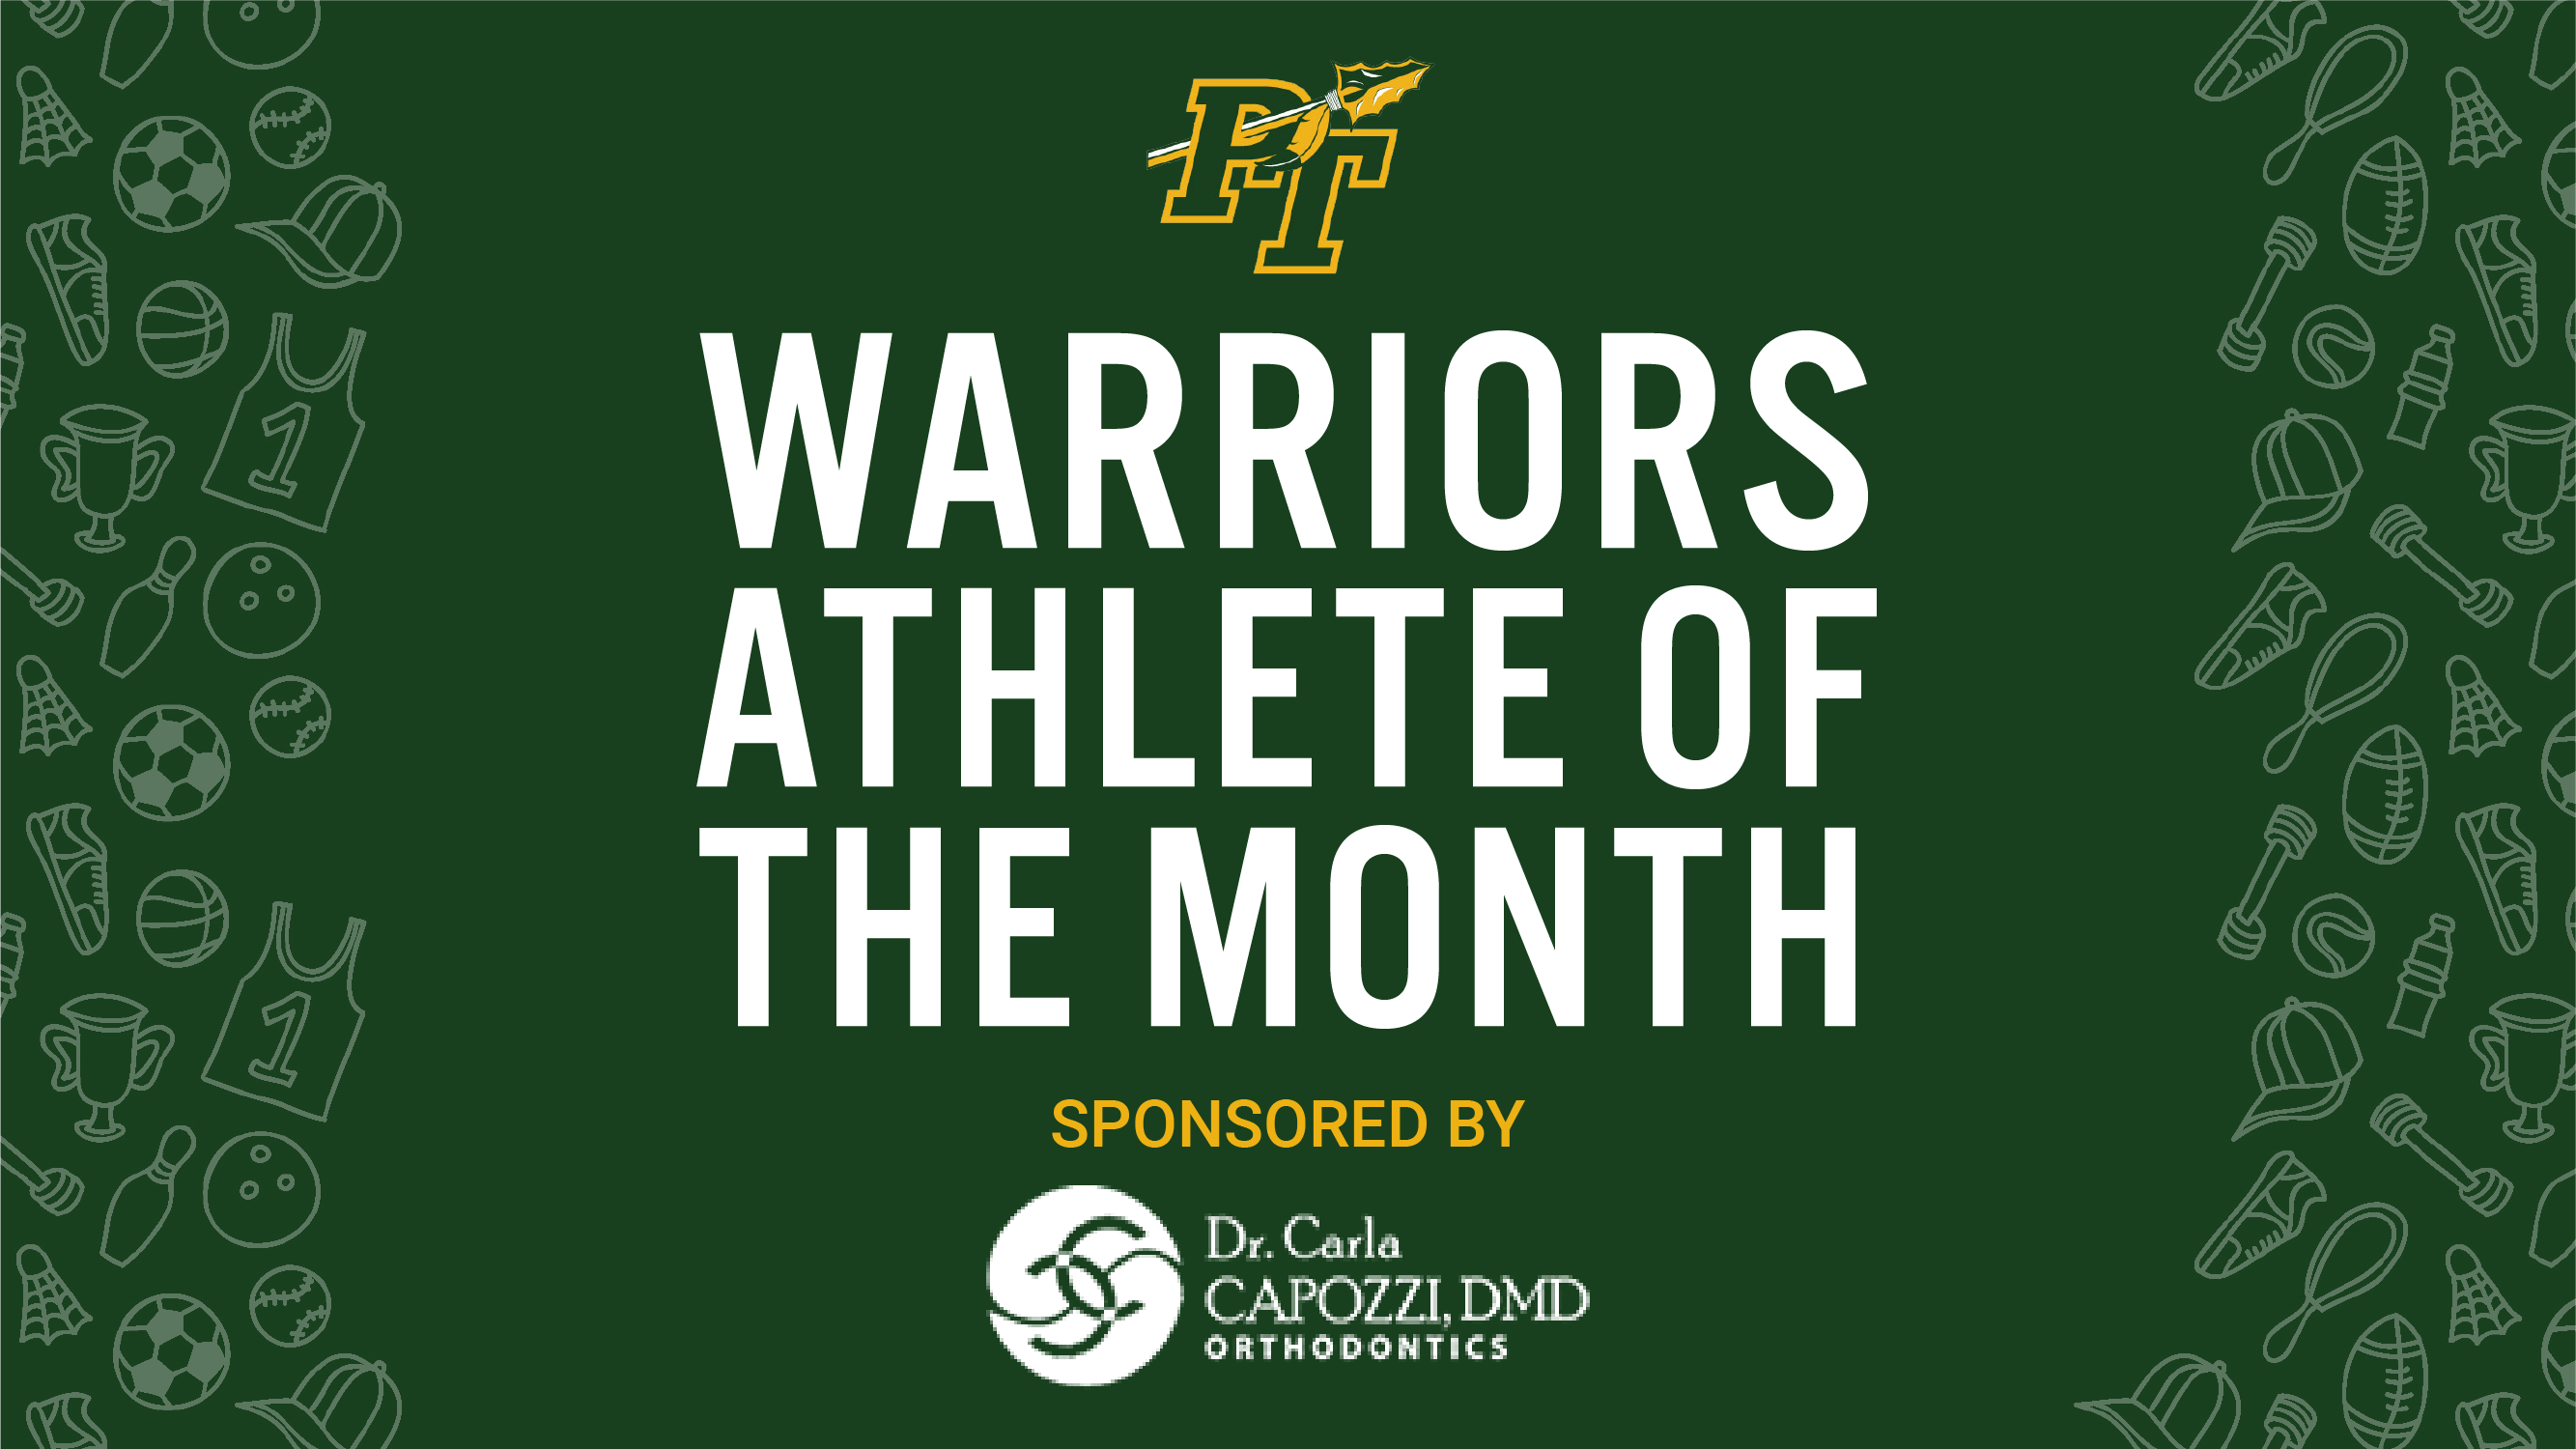 Congratulations, Jordan Lawrence — September's Athlete of the Month! Sponsored by Dr.Carla Capozzi, DMD Orthodontics